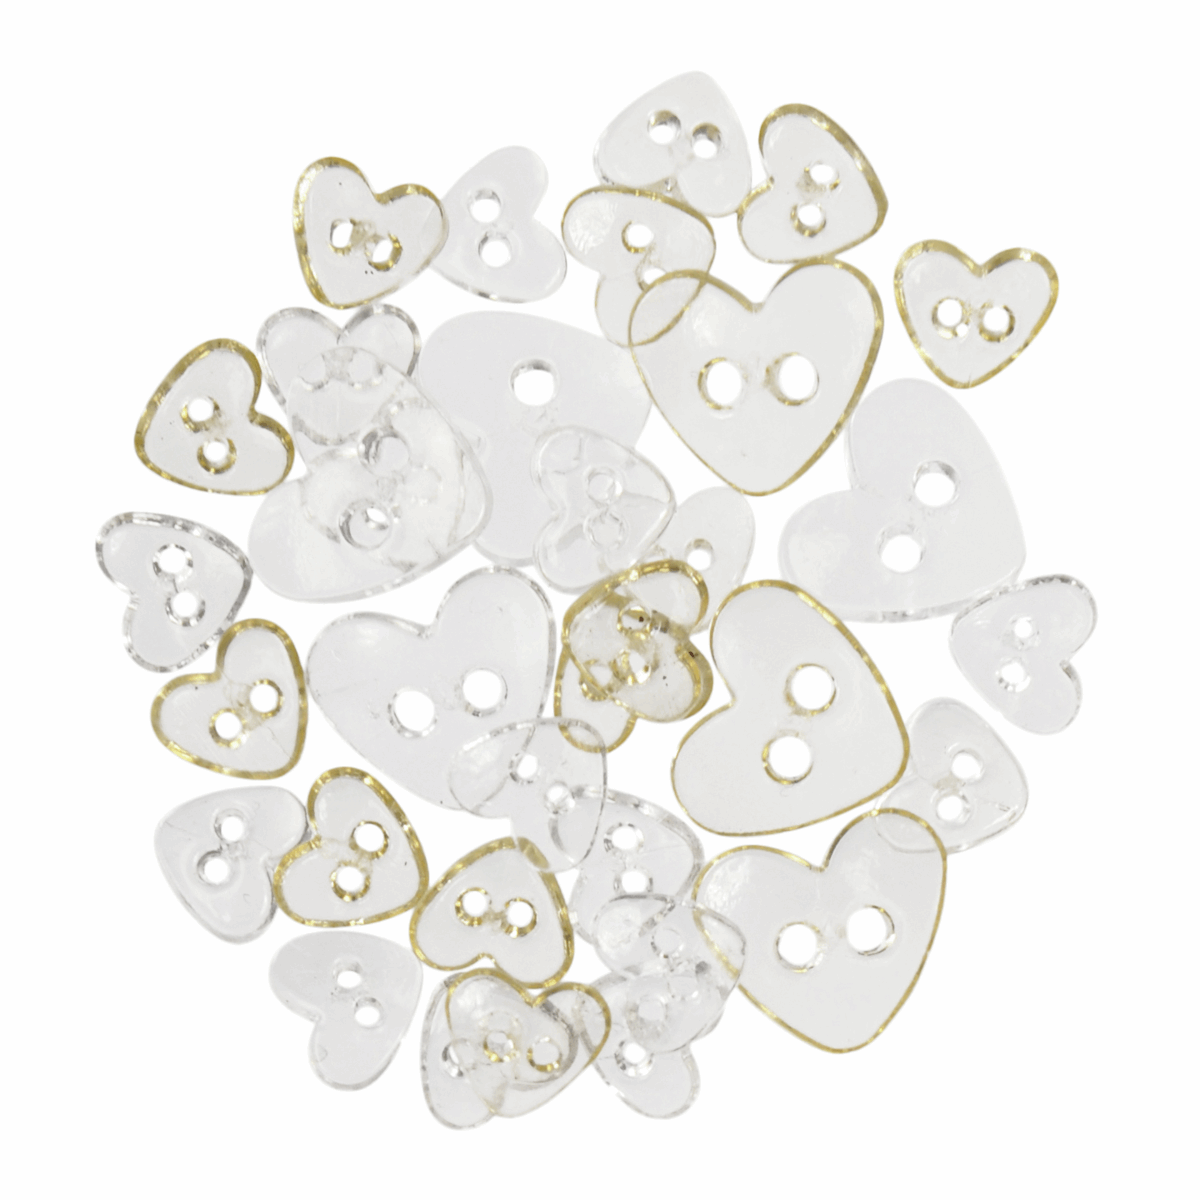 Picture of Mini Craft Buttons: Hearts: Transparent: Assorted White: 1.5g